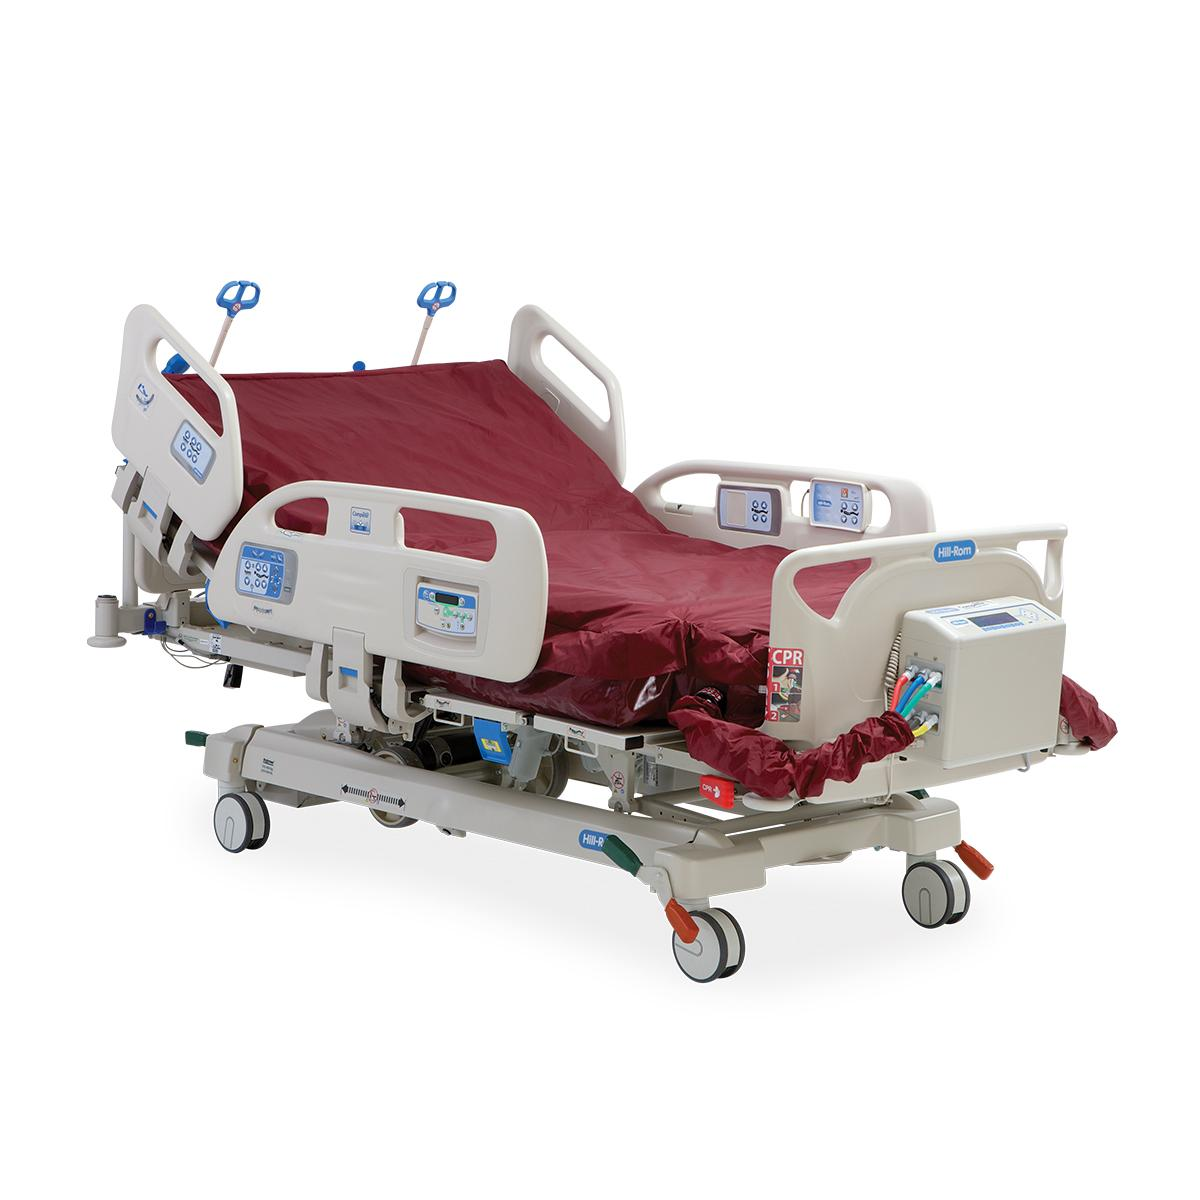 The Hillrom(TM) Compella Bariatric Bed preserves dignity by its design, which resembles that of a standard hospital bed.